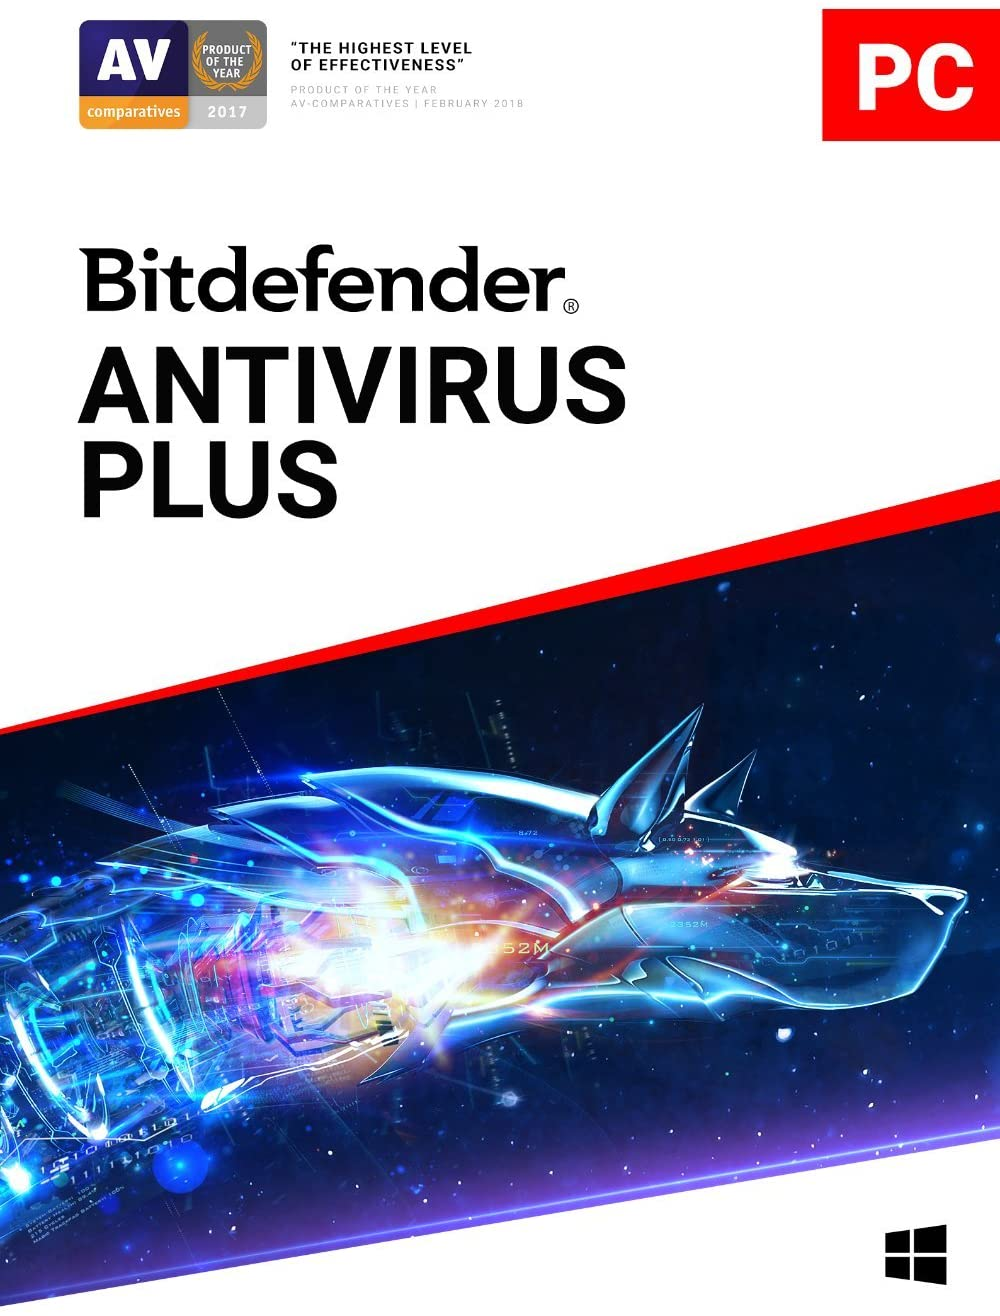 Amazon.com: Bitdefender Antivirus Plus - 1 Device | 1 year Subscription |  PC Activation Code by email: Software